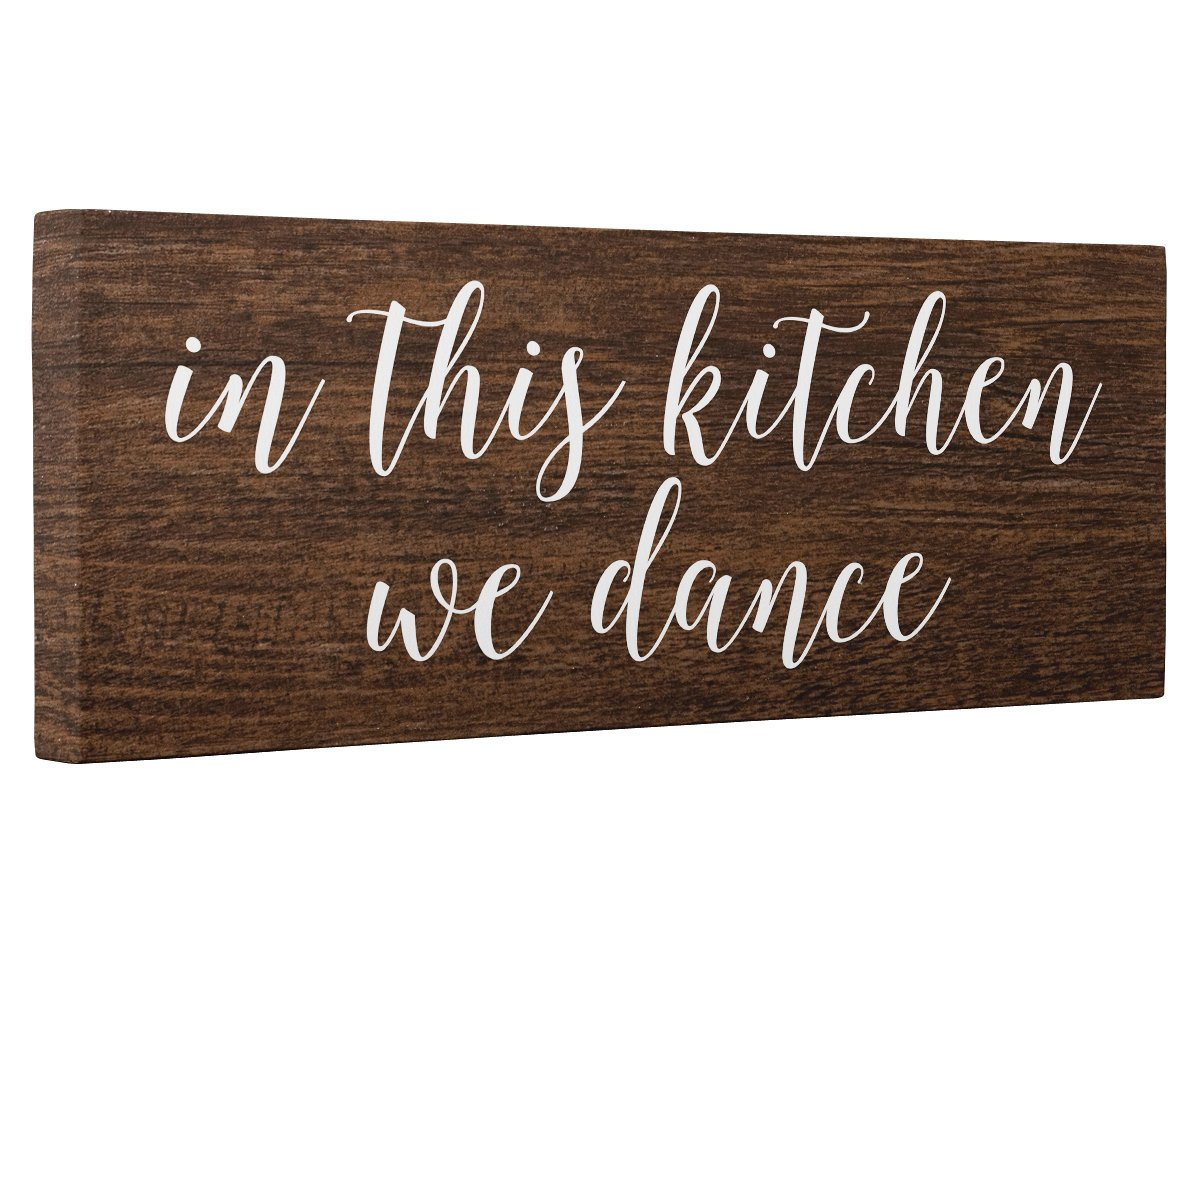 In This Kitchen We Dance Wood Like CANVAS Wall Art Home Décor